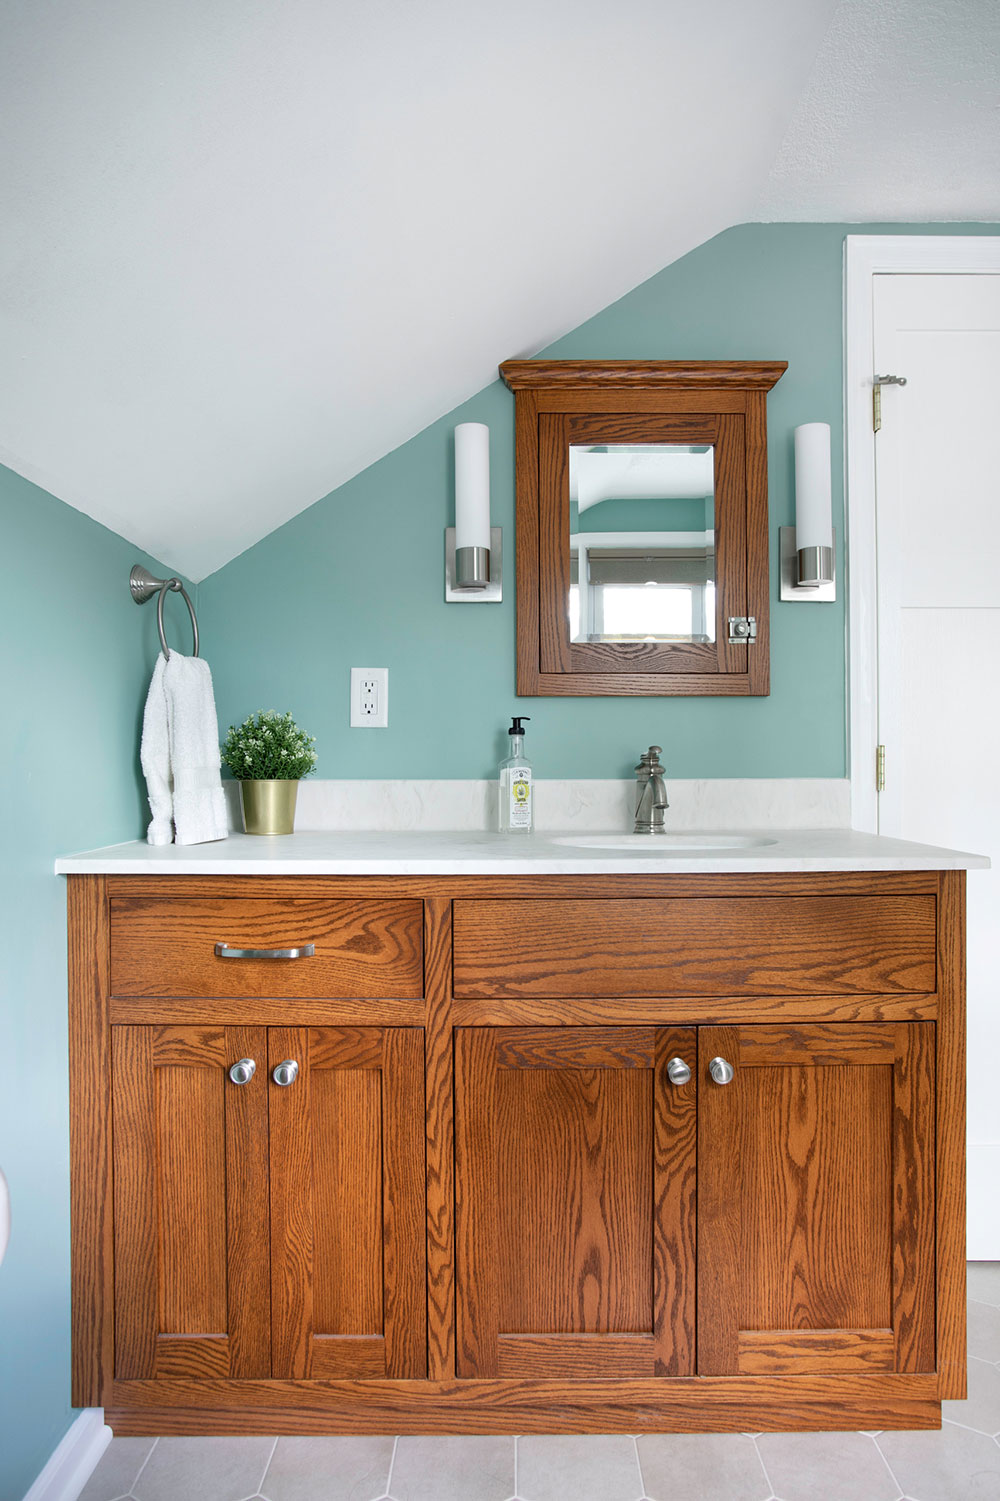 Longfellow-kitchen-bathroom-and-dirty-room-by-Emily-Blonigen What to do with old kitchen cabinets (repurposed cabinet ideas)